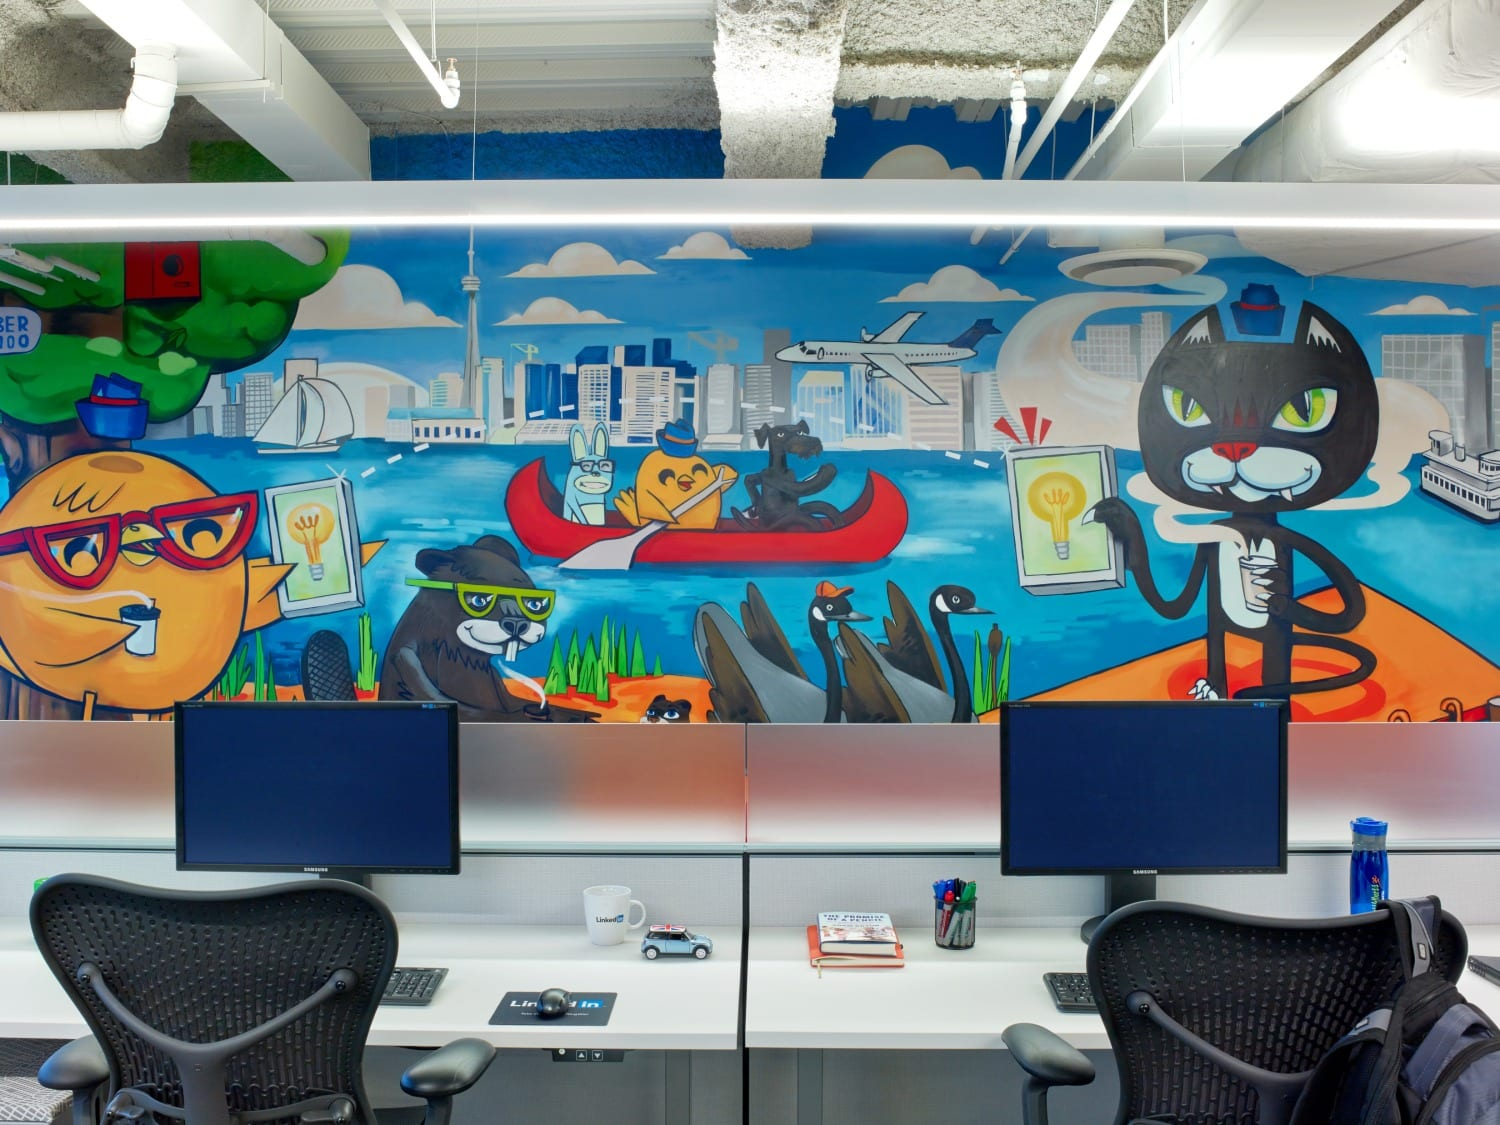 LinkedIn Wall Mural with Cat